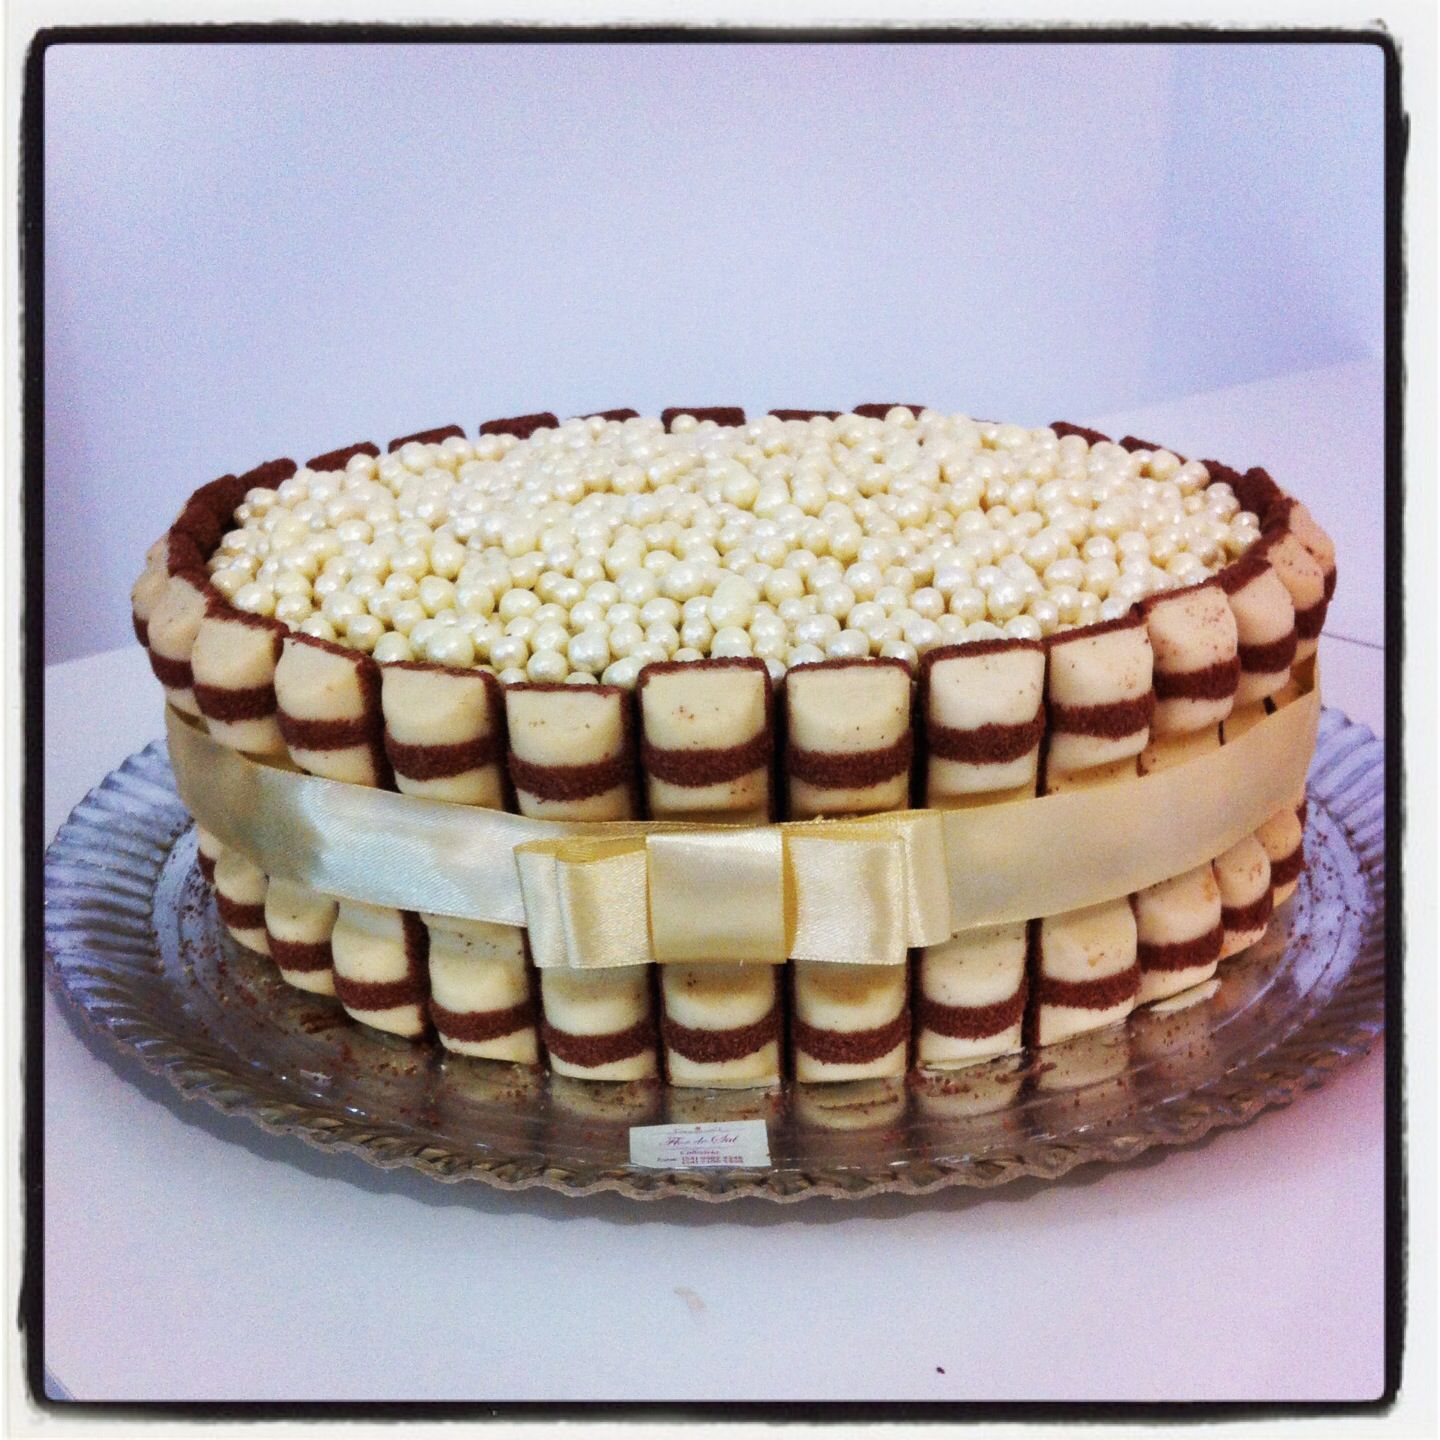 kinder bueno cake with pearls kinder bueno pinterest. Black Bedroom Furniture Sets. Home Design Ideas